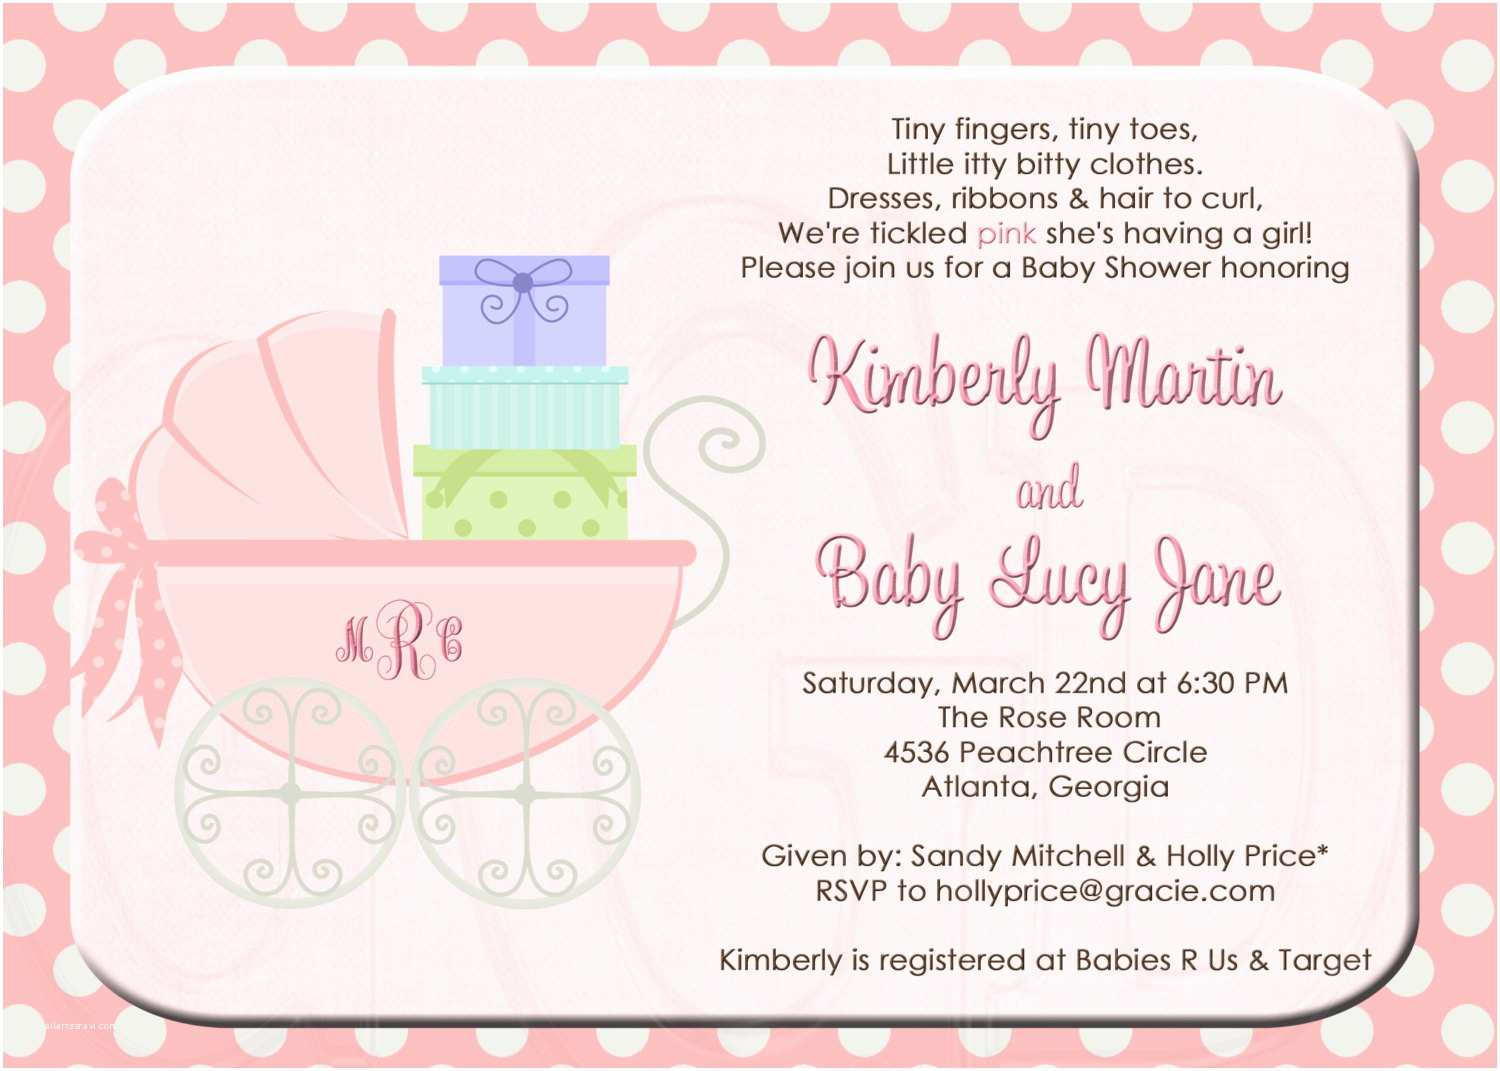 Baby Shower Invitation Message Sample Baby Shower Invitations Wording